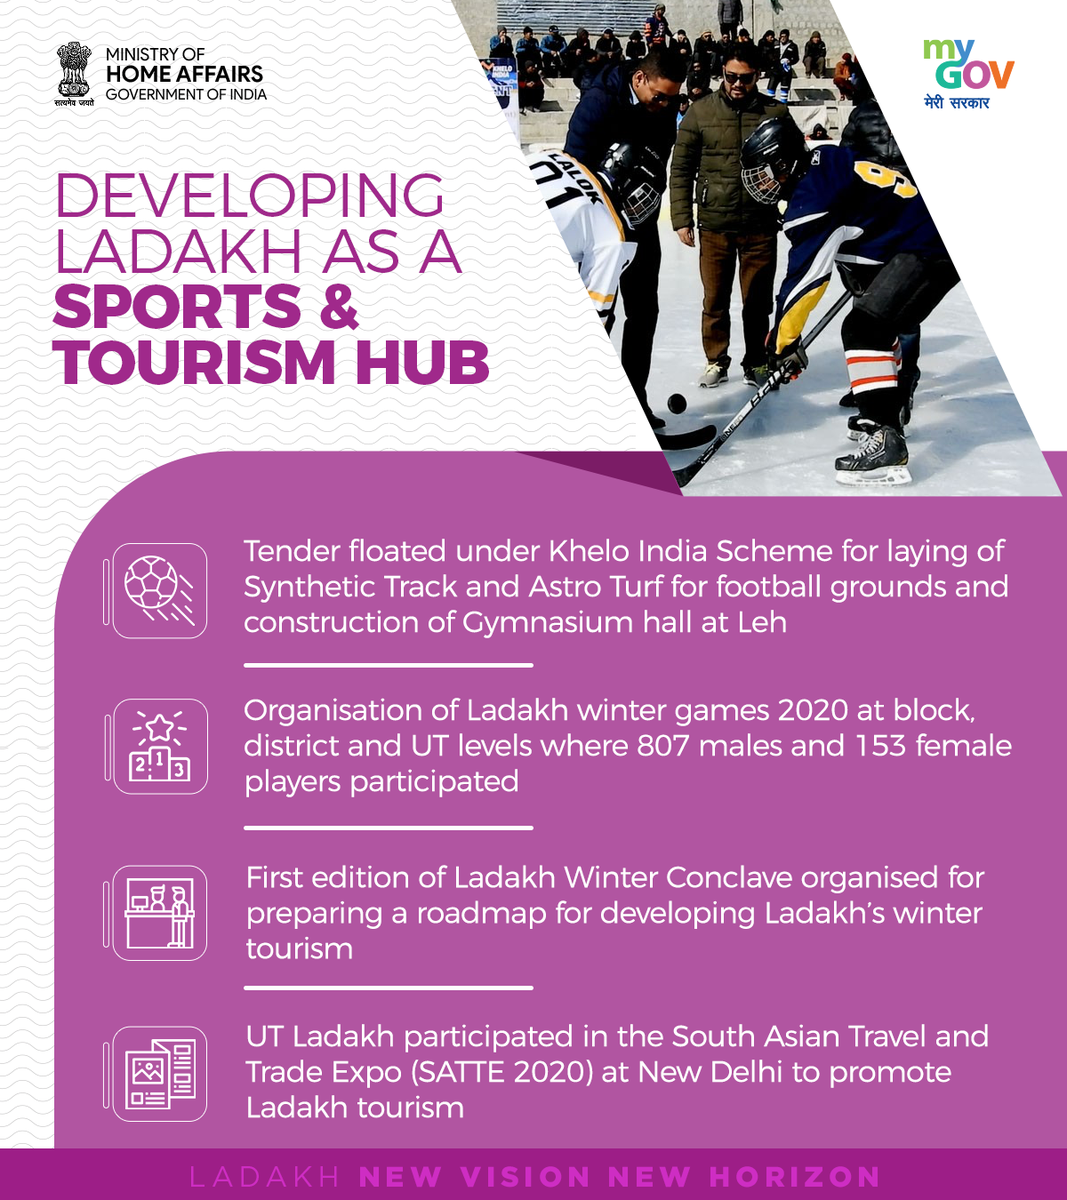 Khelo India Scheme is developing Ladakh as a hub for sports and Tourism. #OneYearOfDevelopment https://t.co/D5UL7YGQLx https://t.co/cVBVWSO4Cc